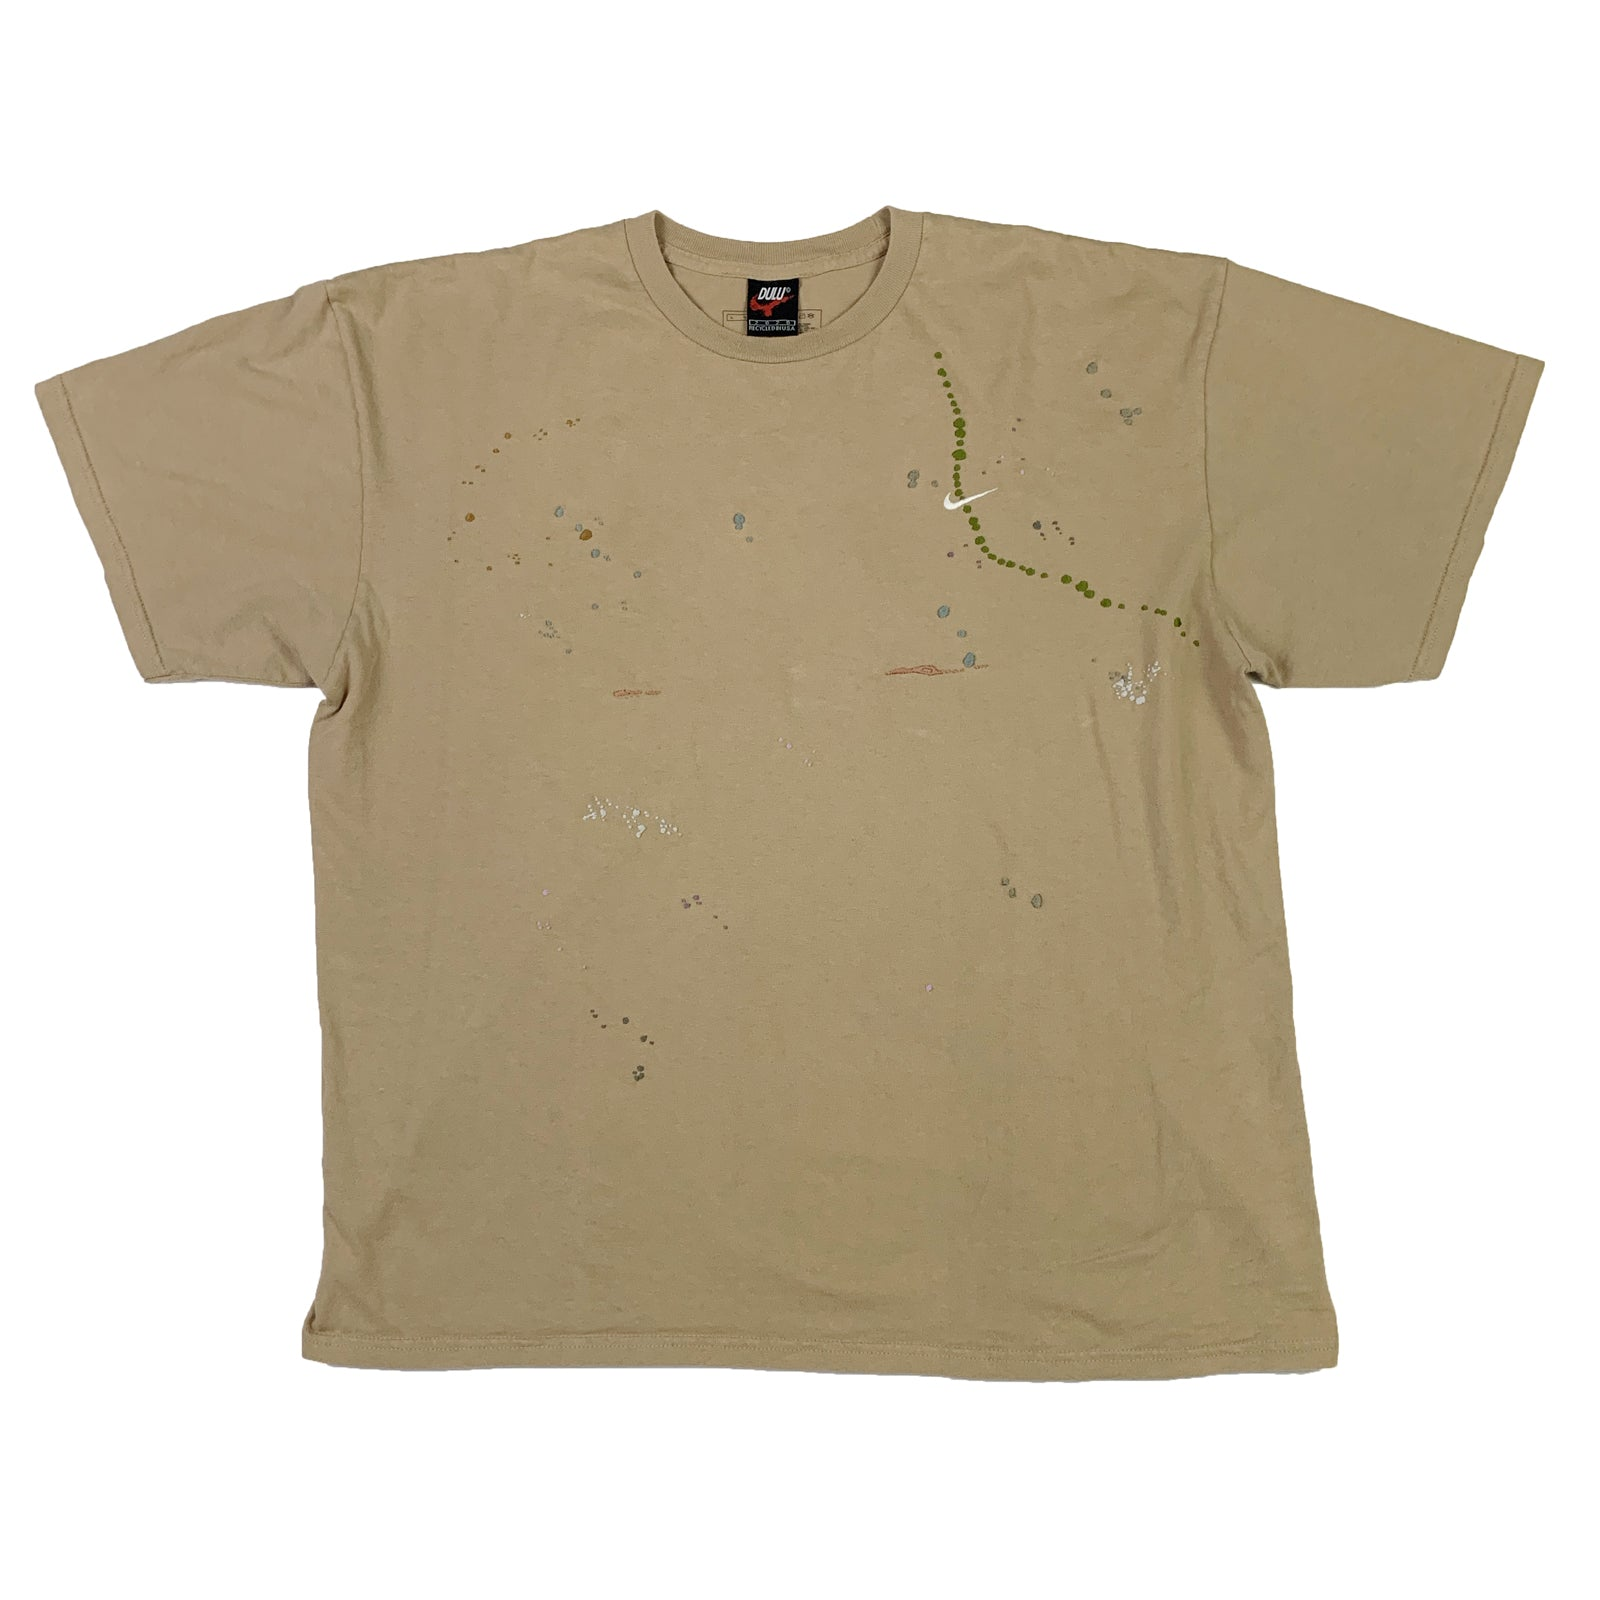 "BANDULU "" SEWER LEVEL "" VINTAGE NIKE TEE XL"